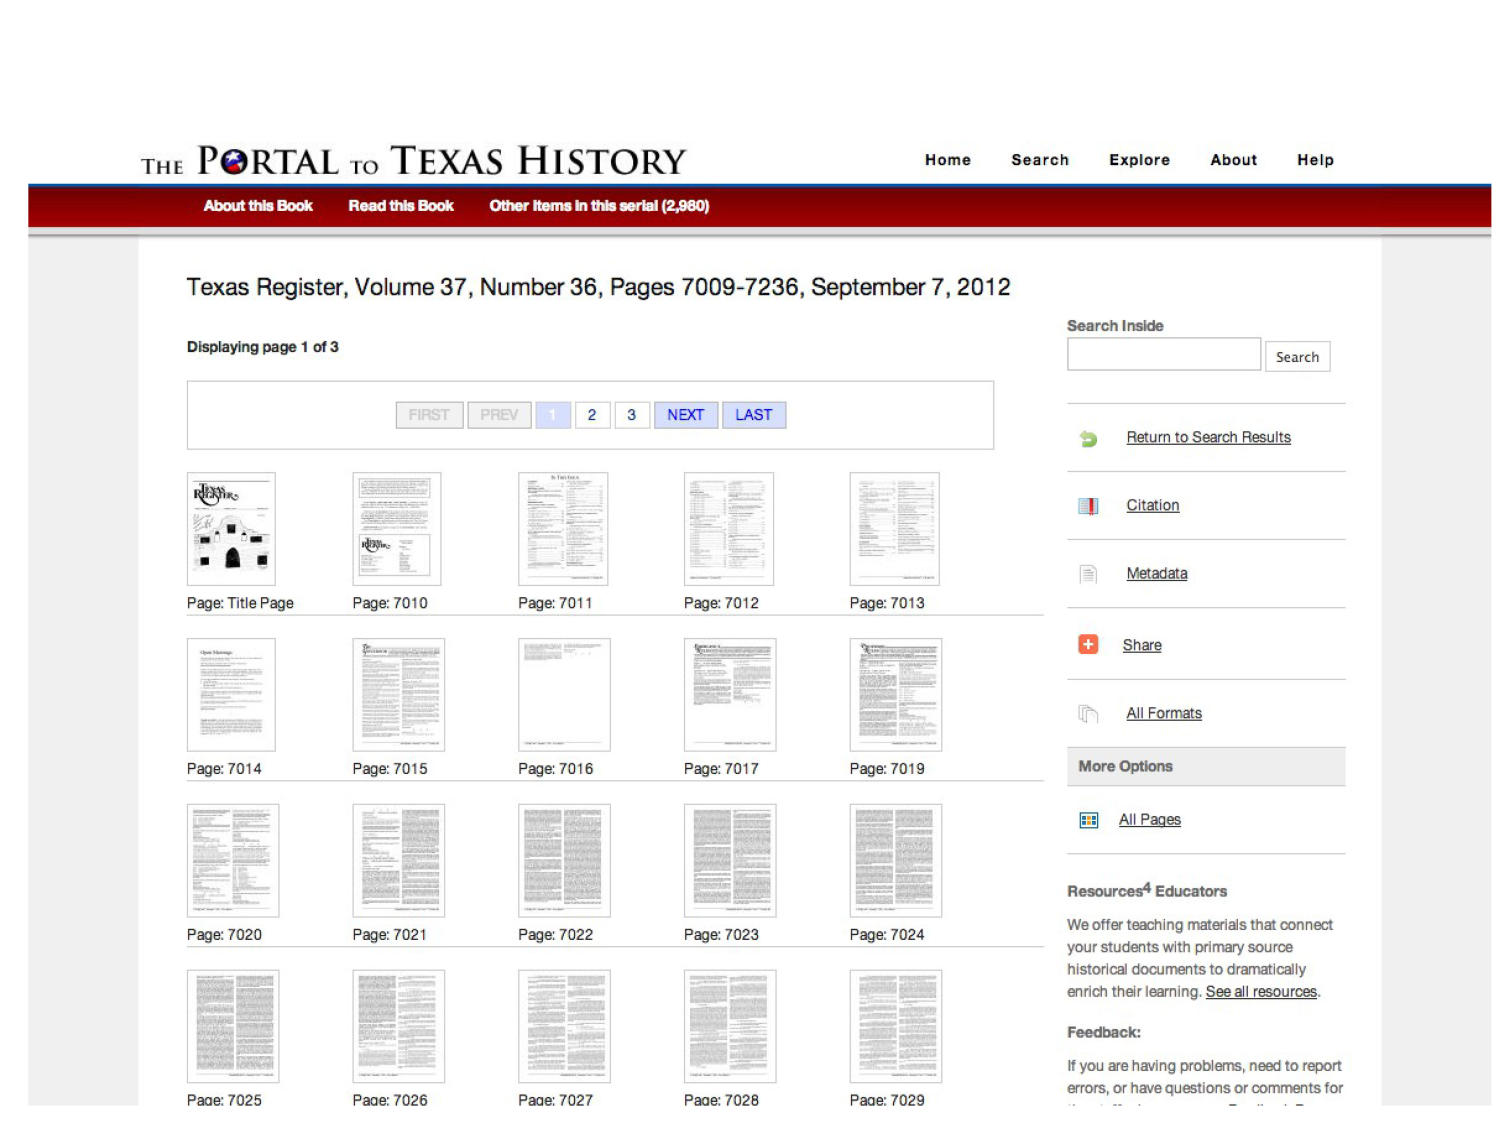 The Portal to Texas History: Technology Overview                                                                                                      [Sequence #]: 19 of 73